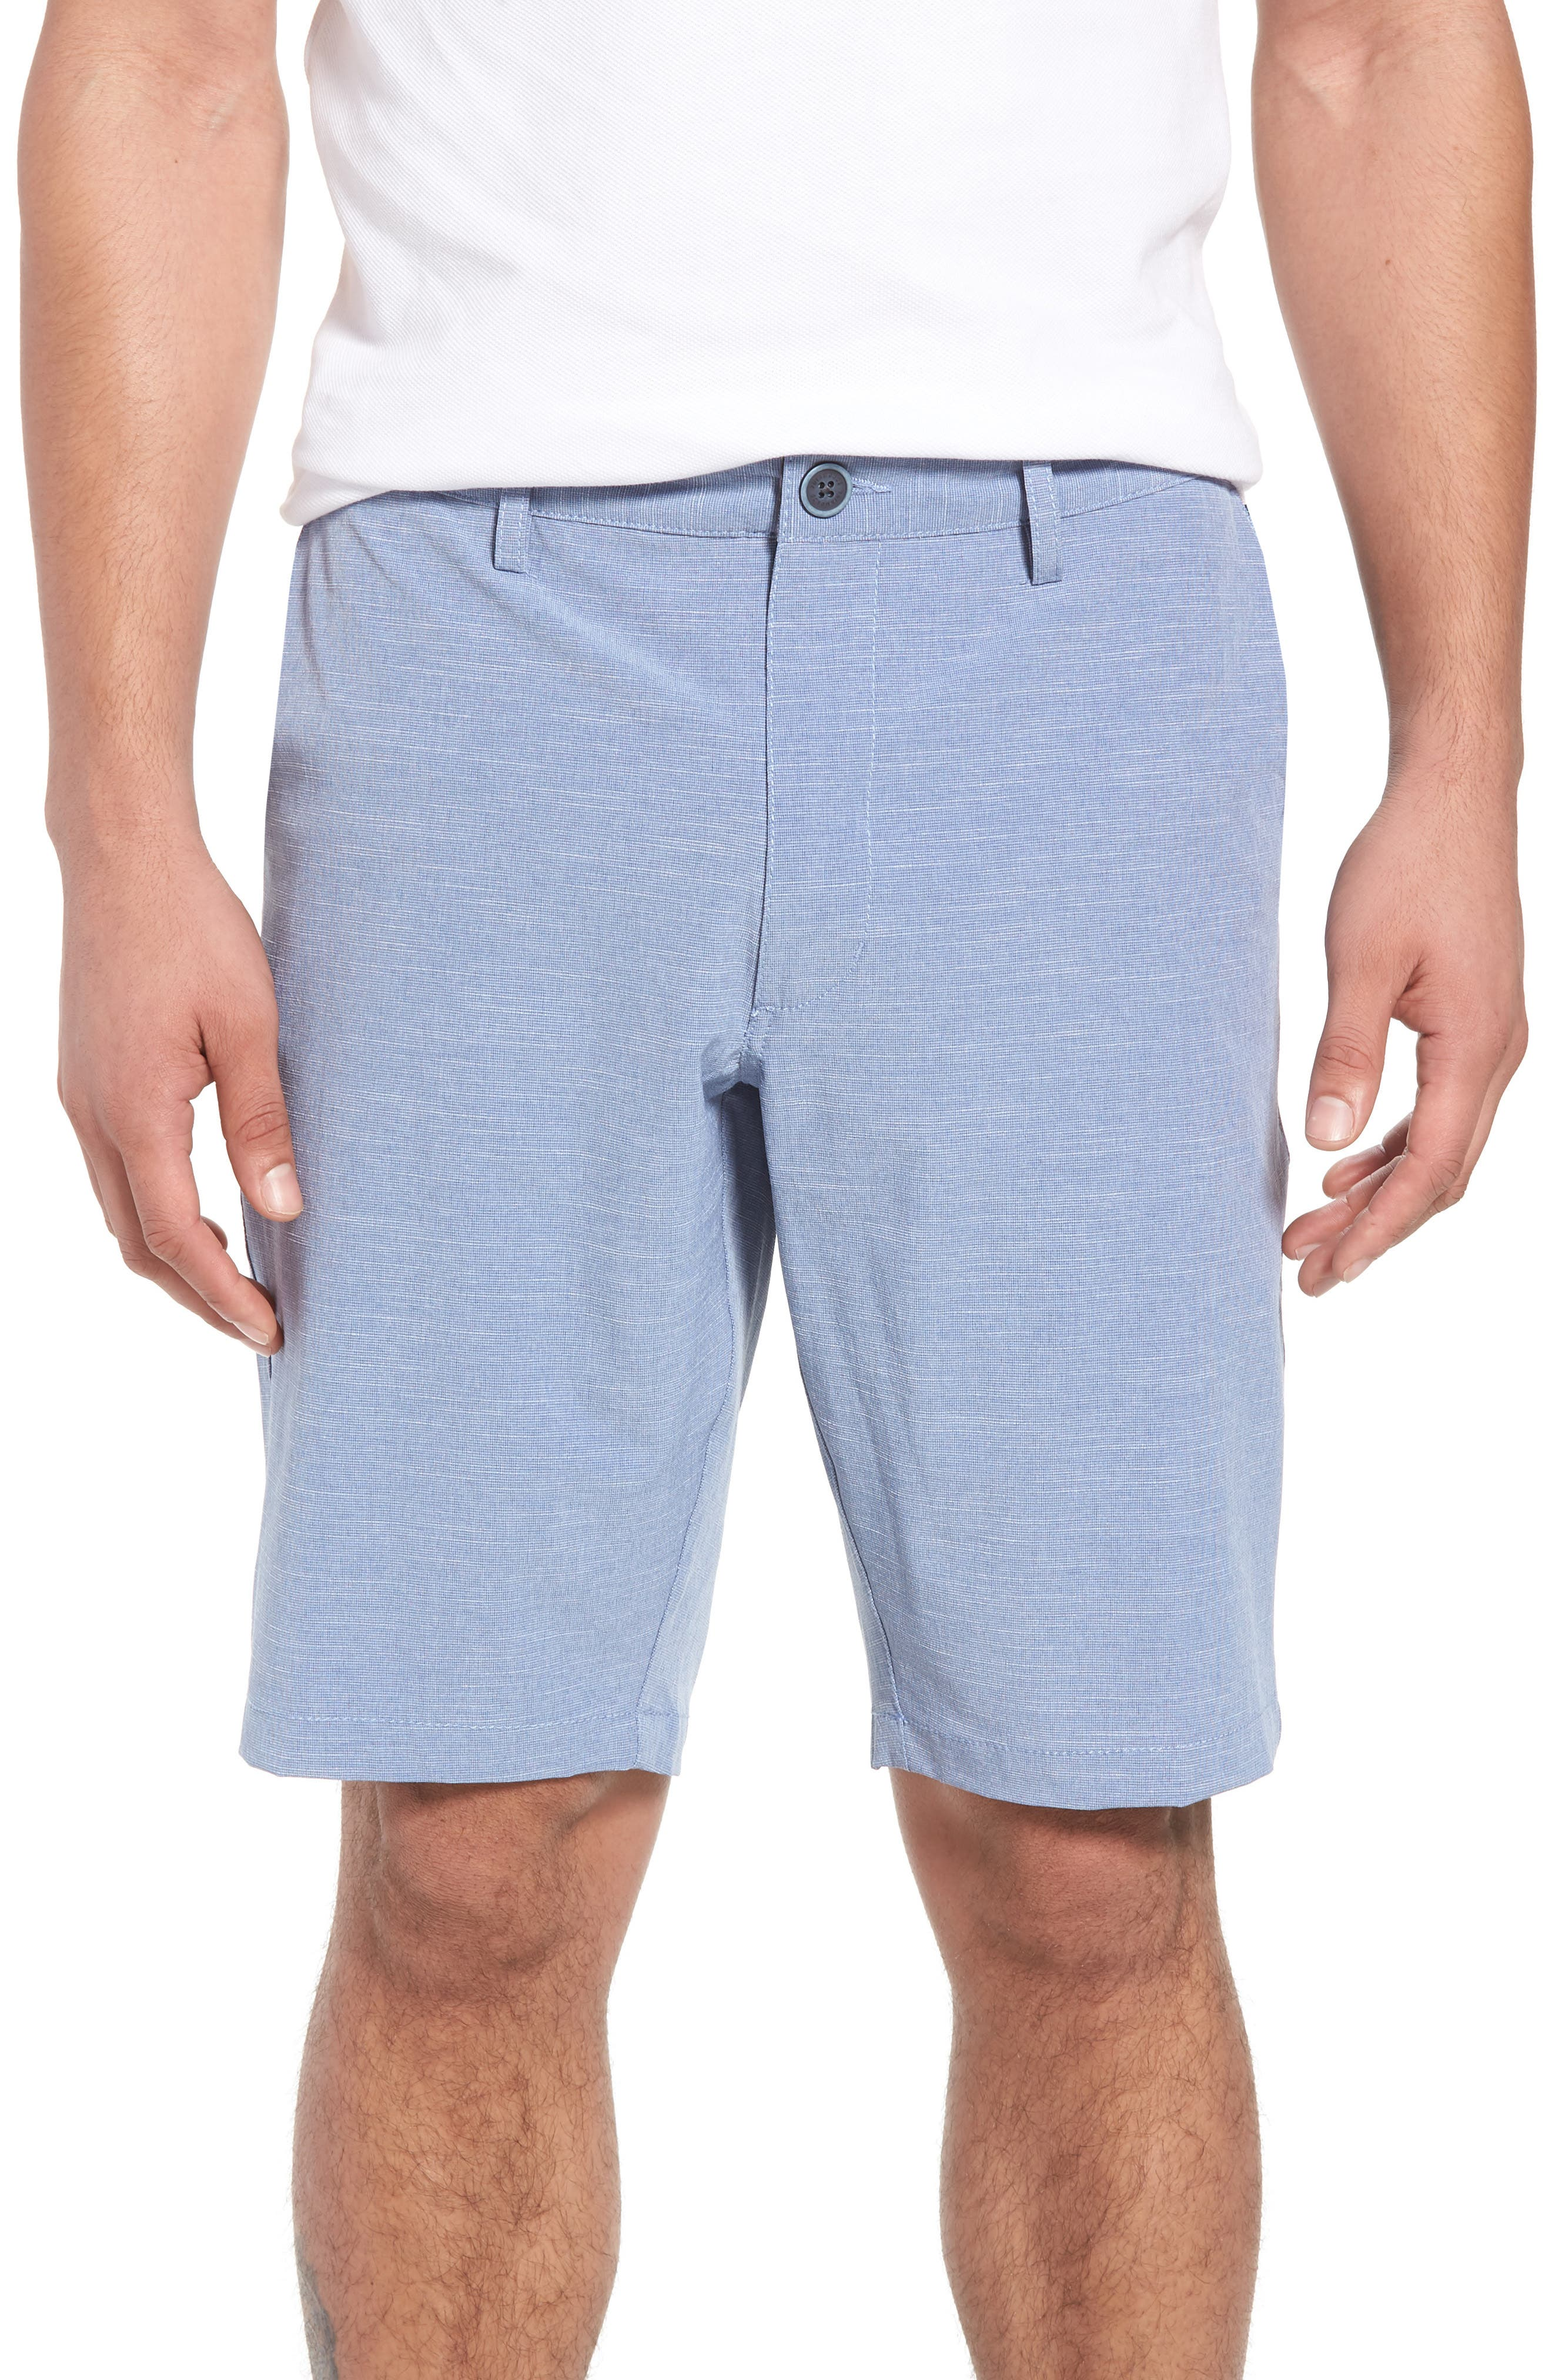 Existence Stretch Shorts,                             Main thumbnail 3, color,